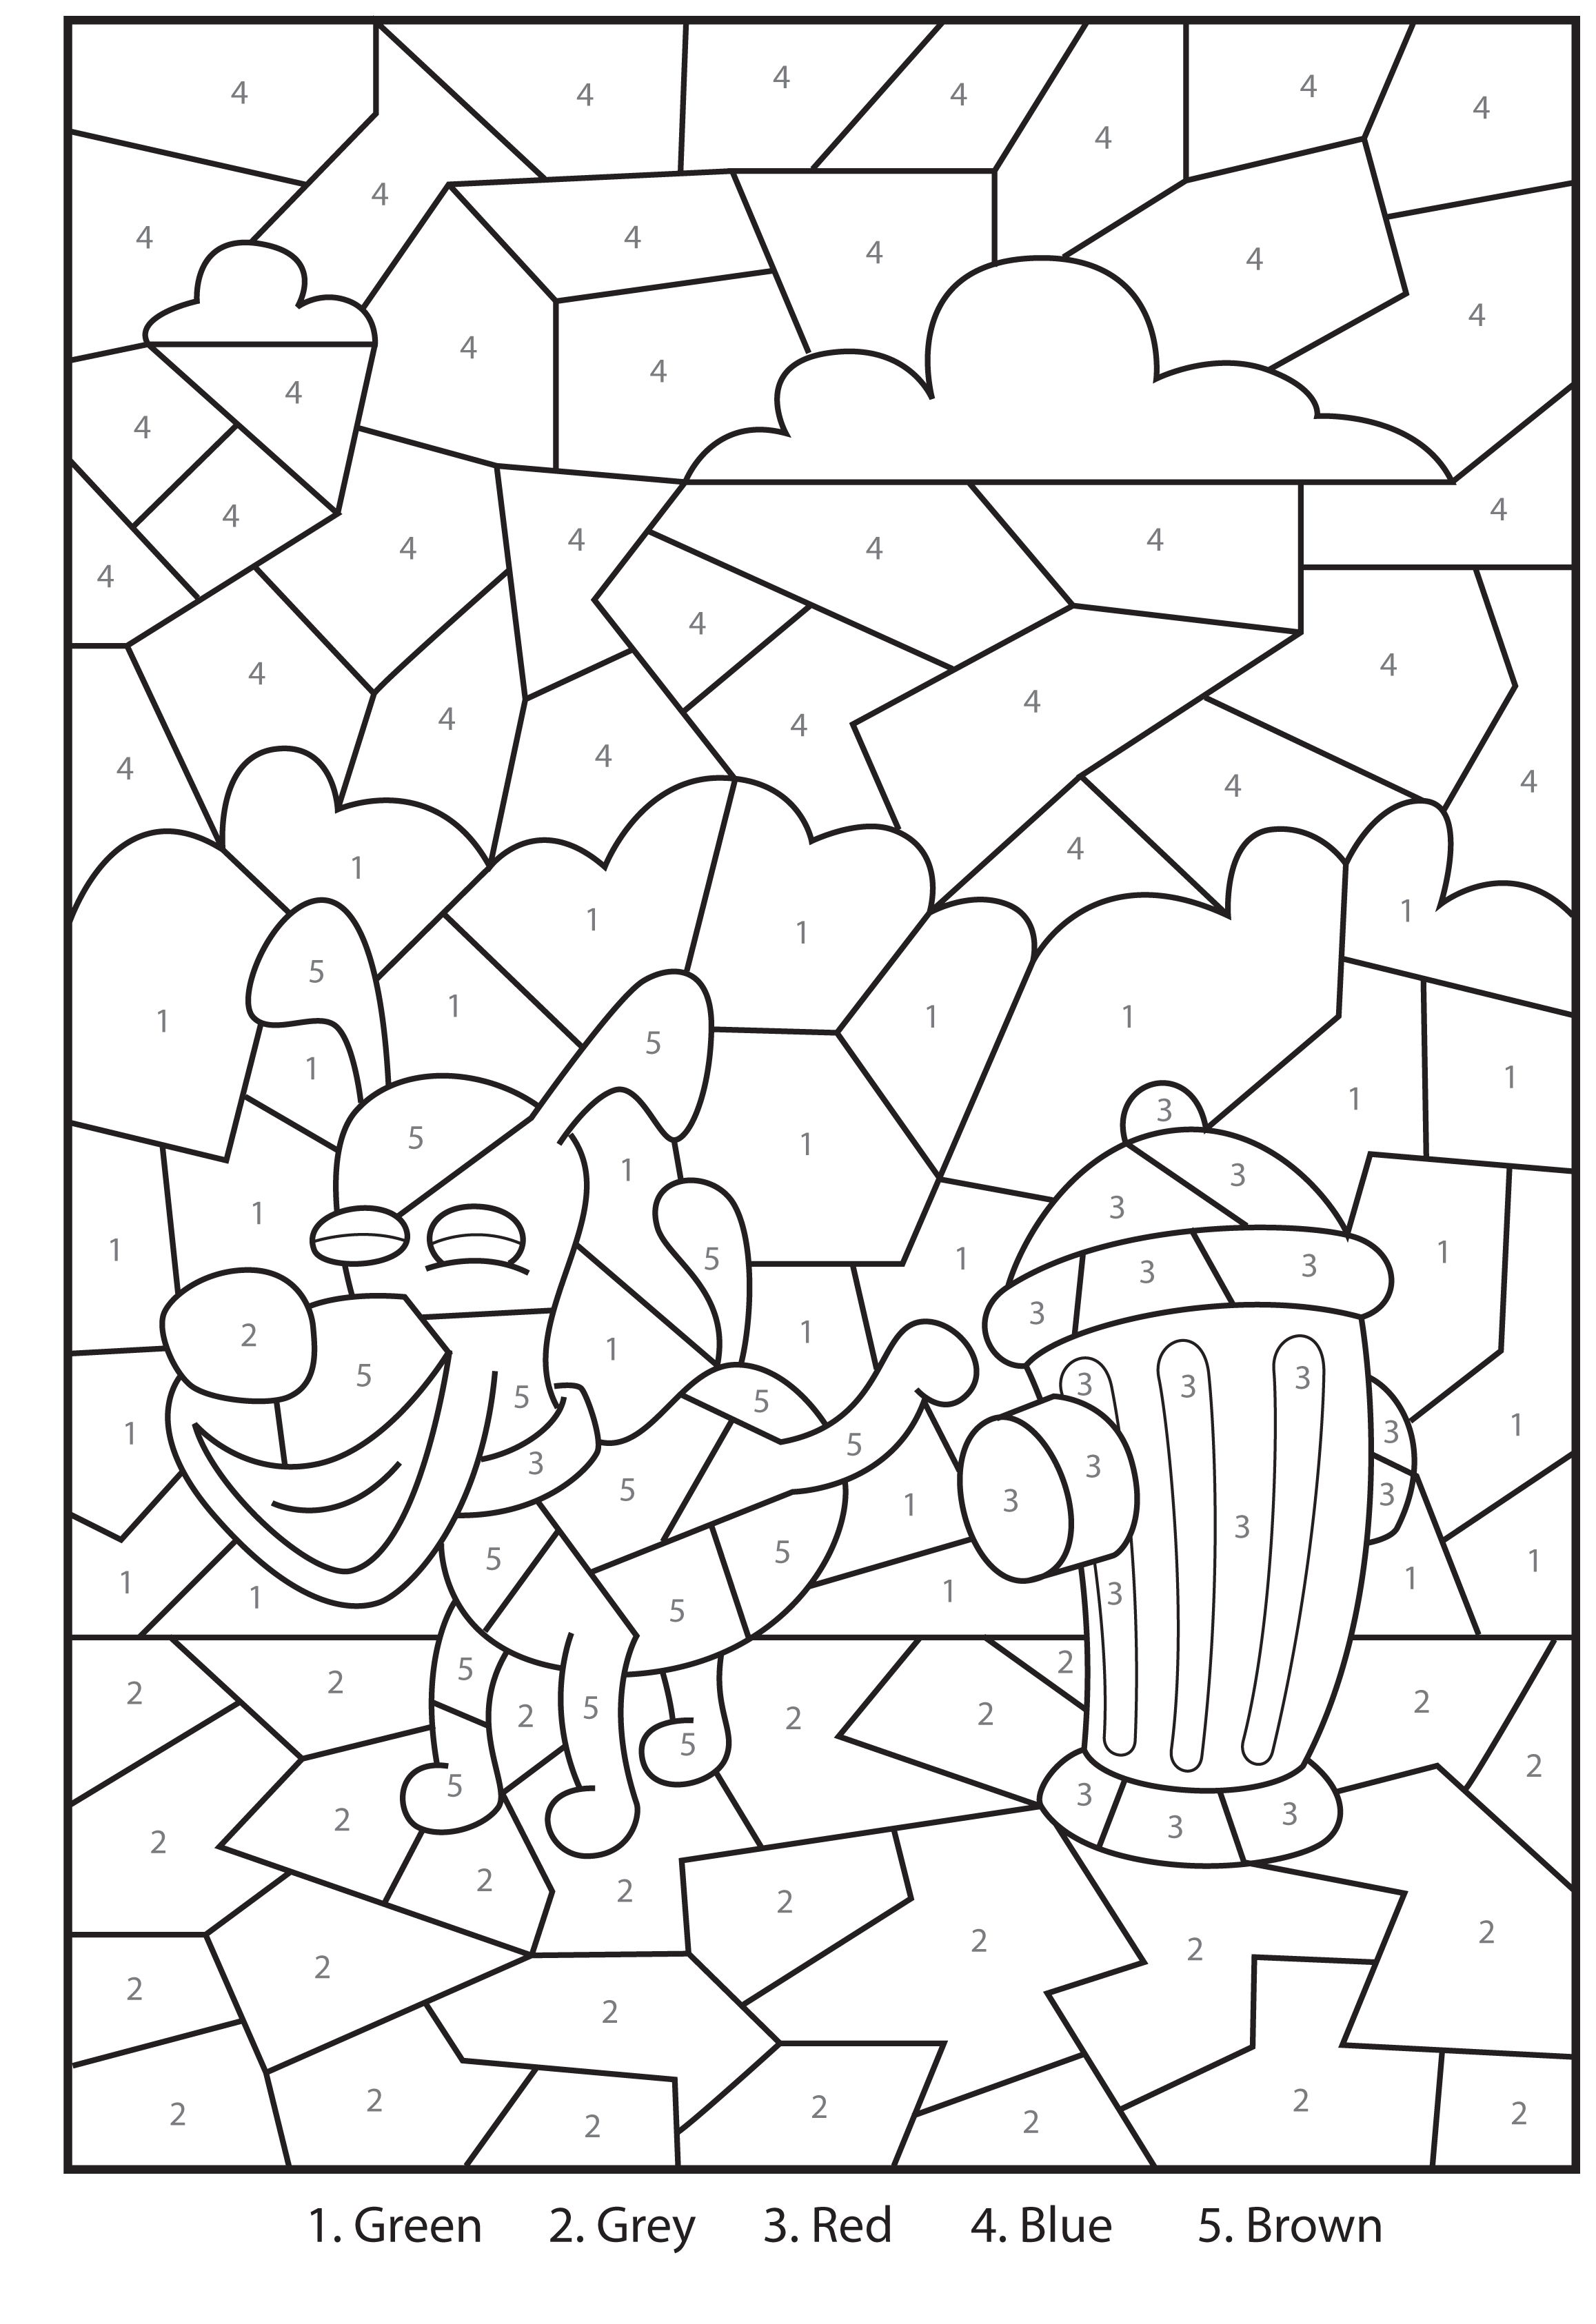 integer coloring activity pages - photo#36